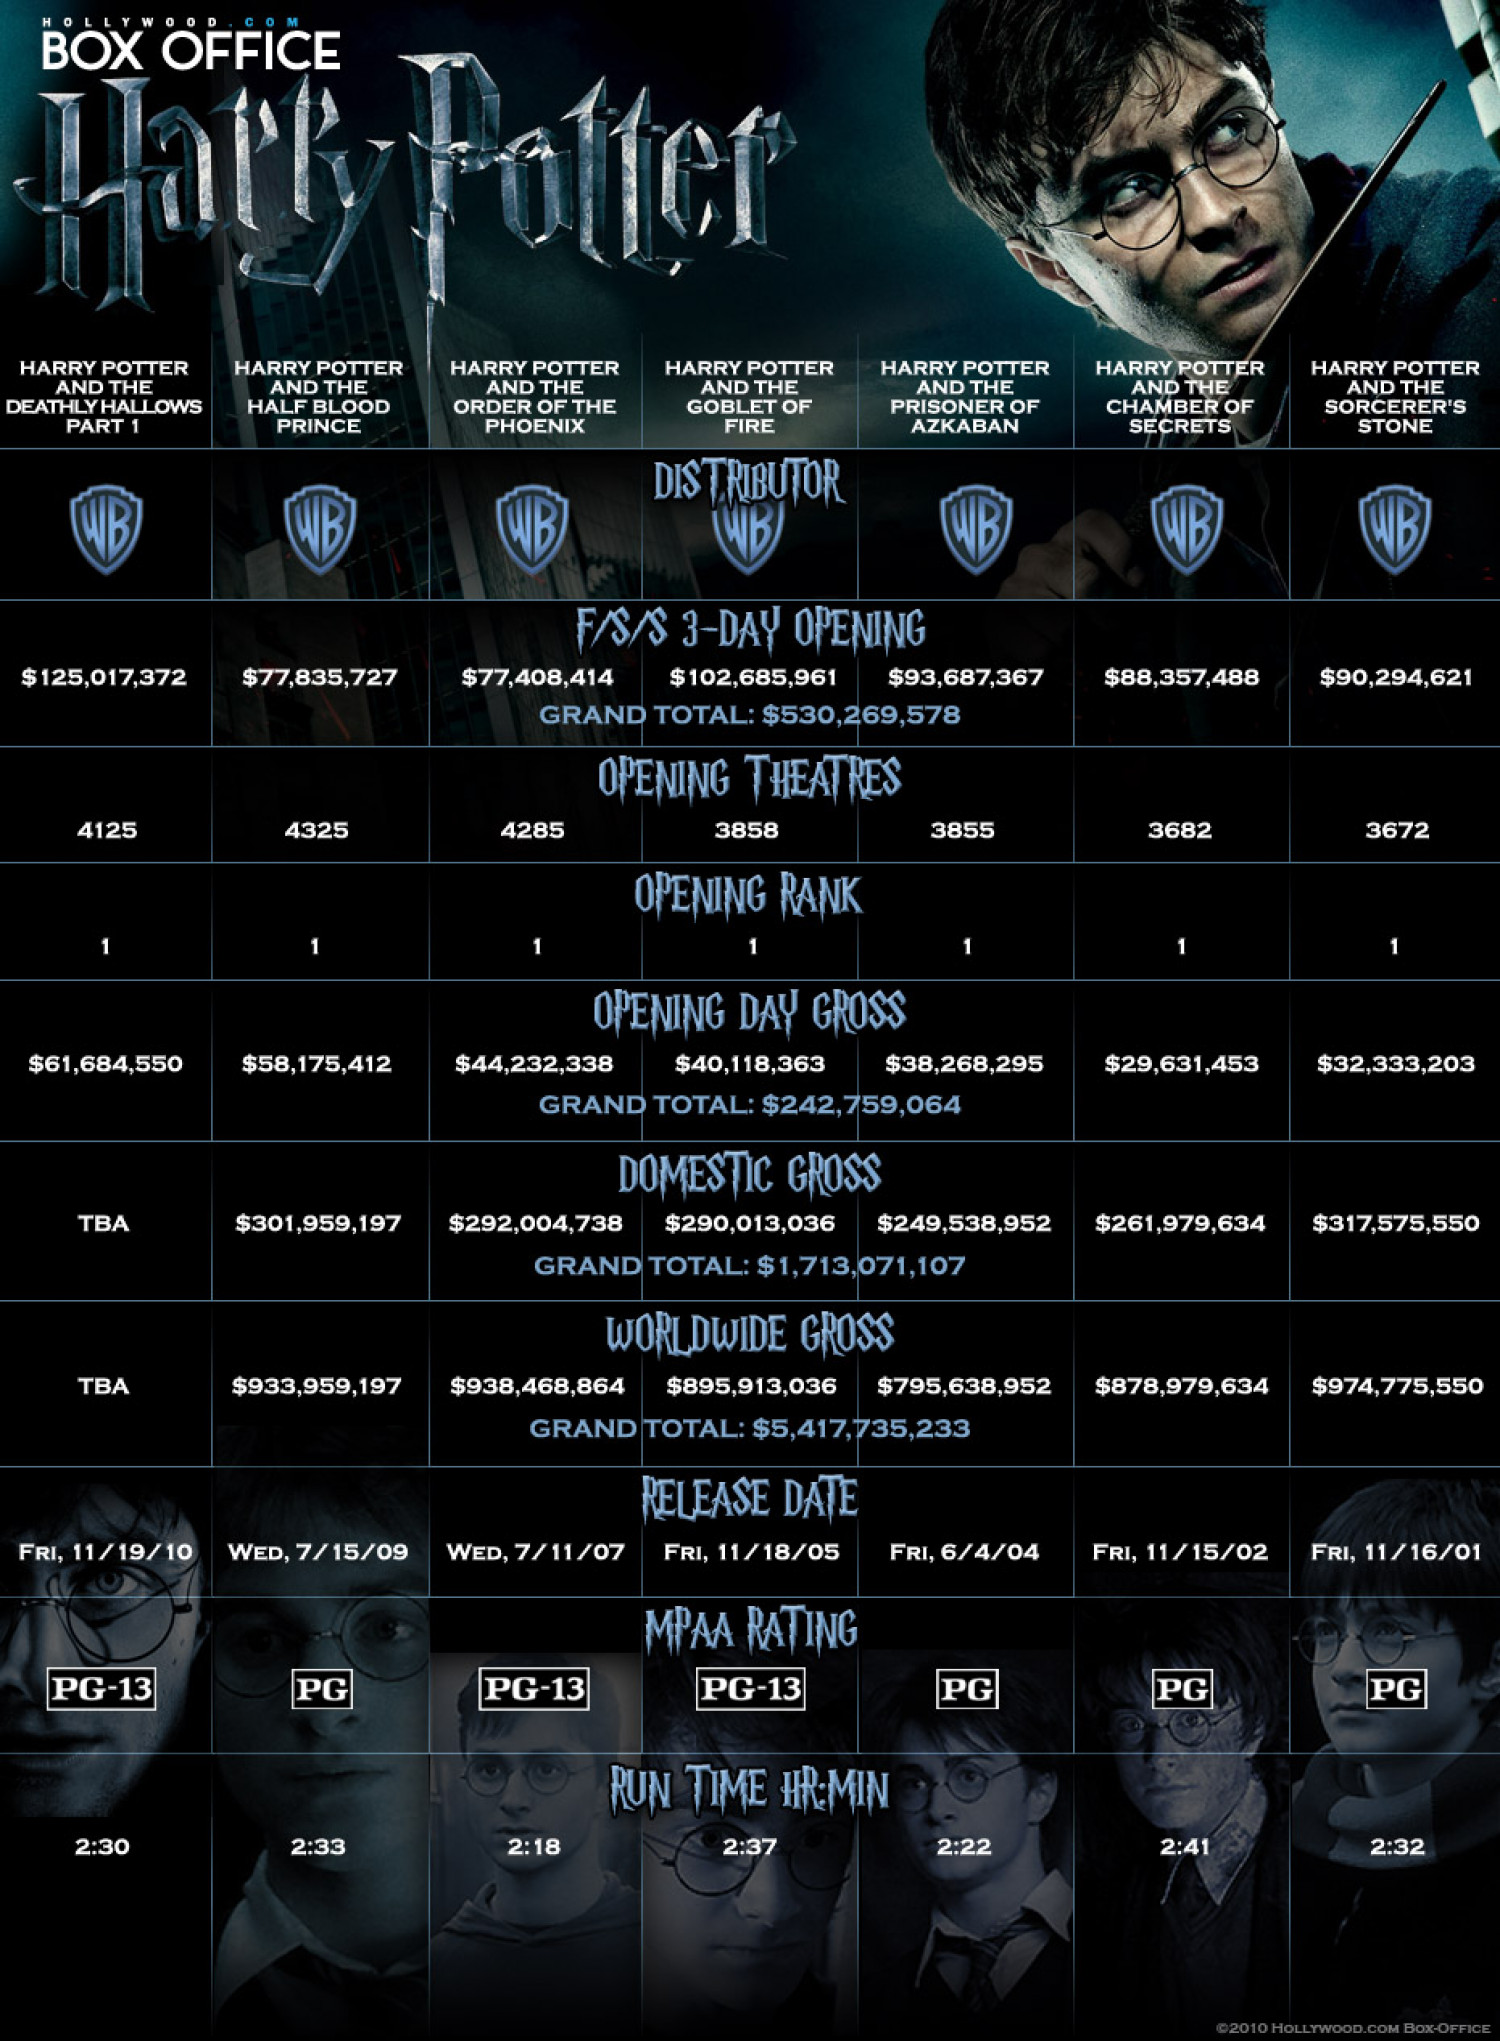 Harry Potter's Box Office Breakdown | Hollywood. Infographic